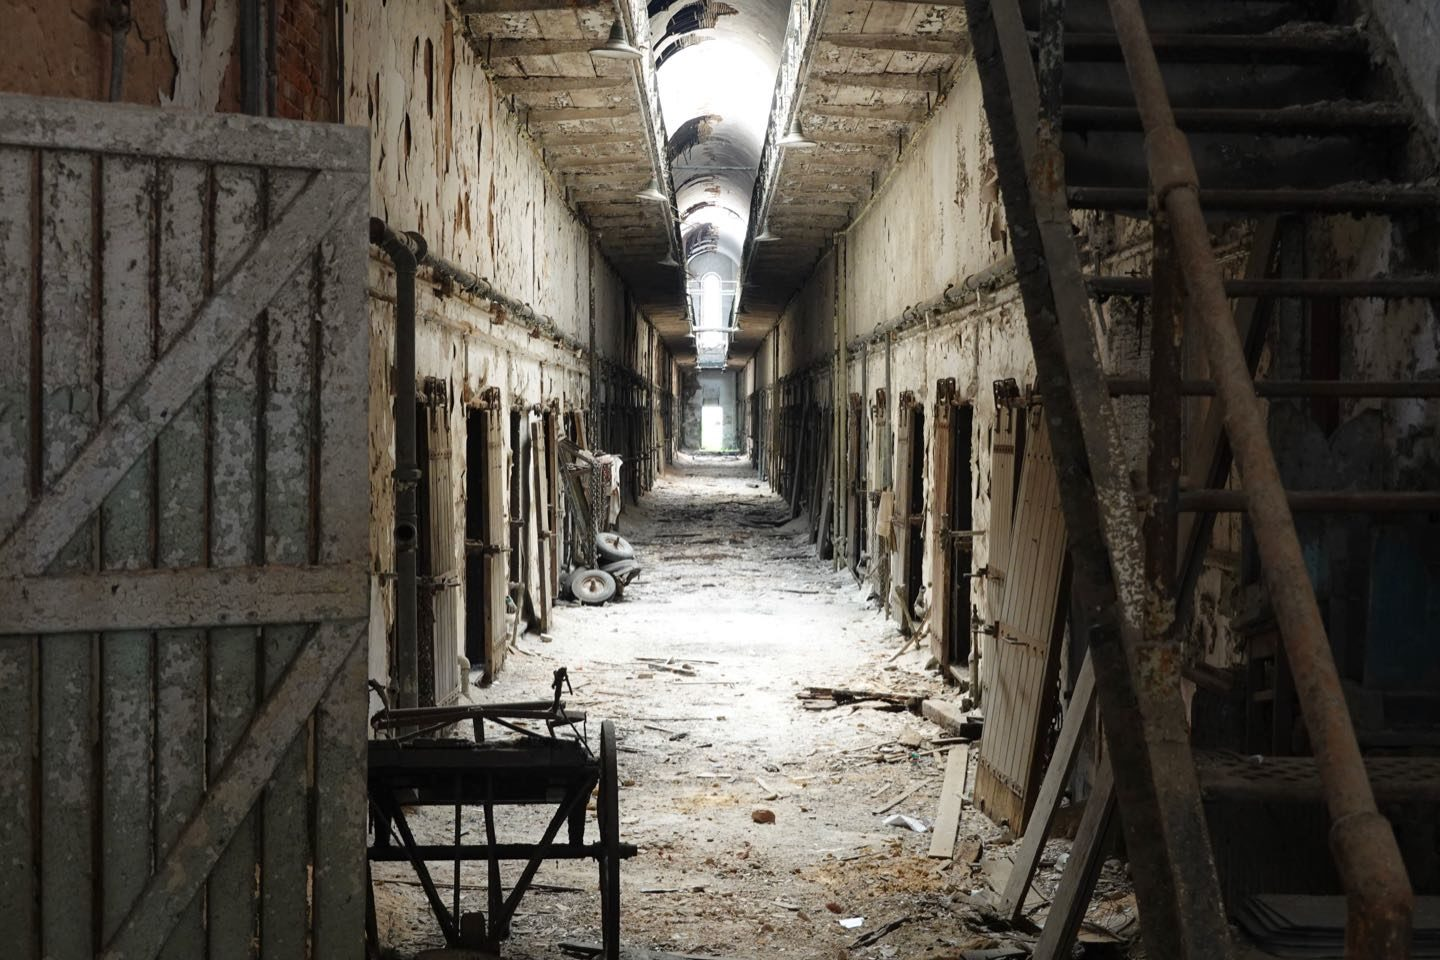 Abandoned prison to visit in America.